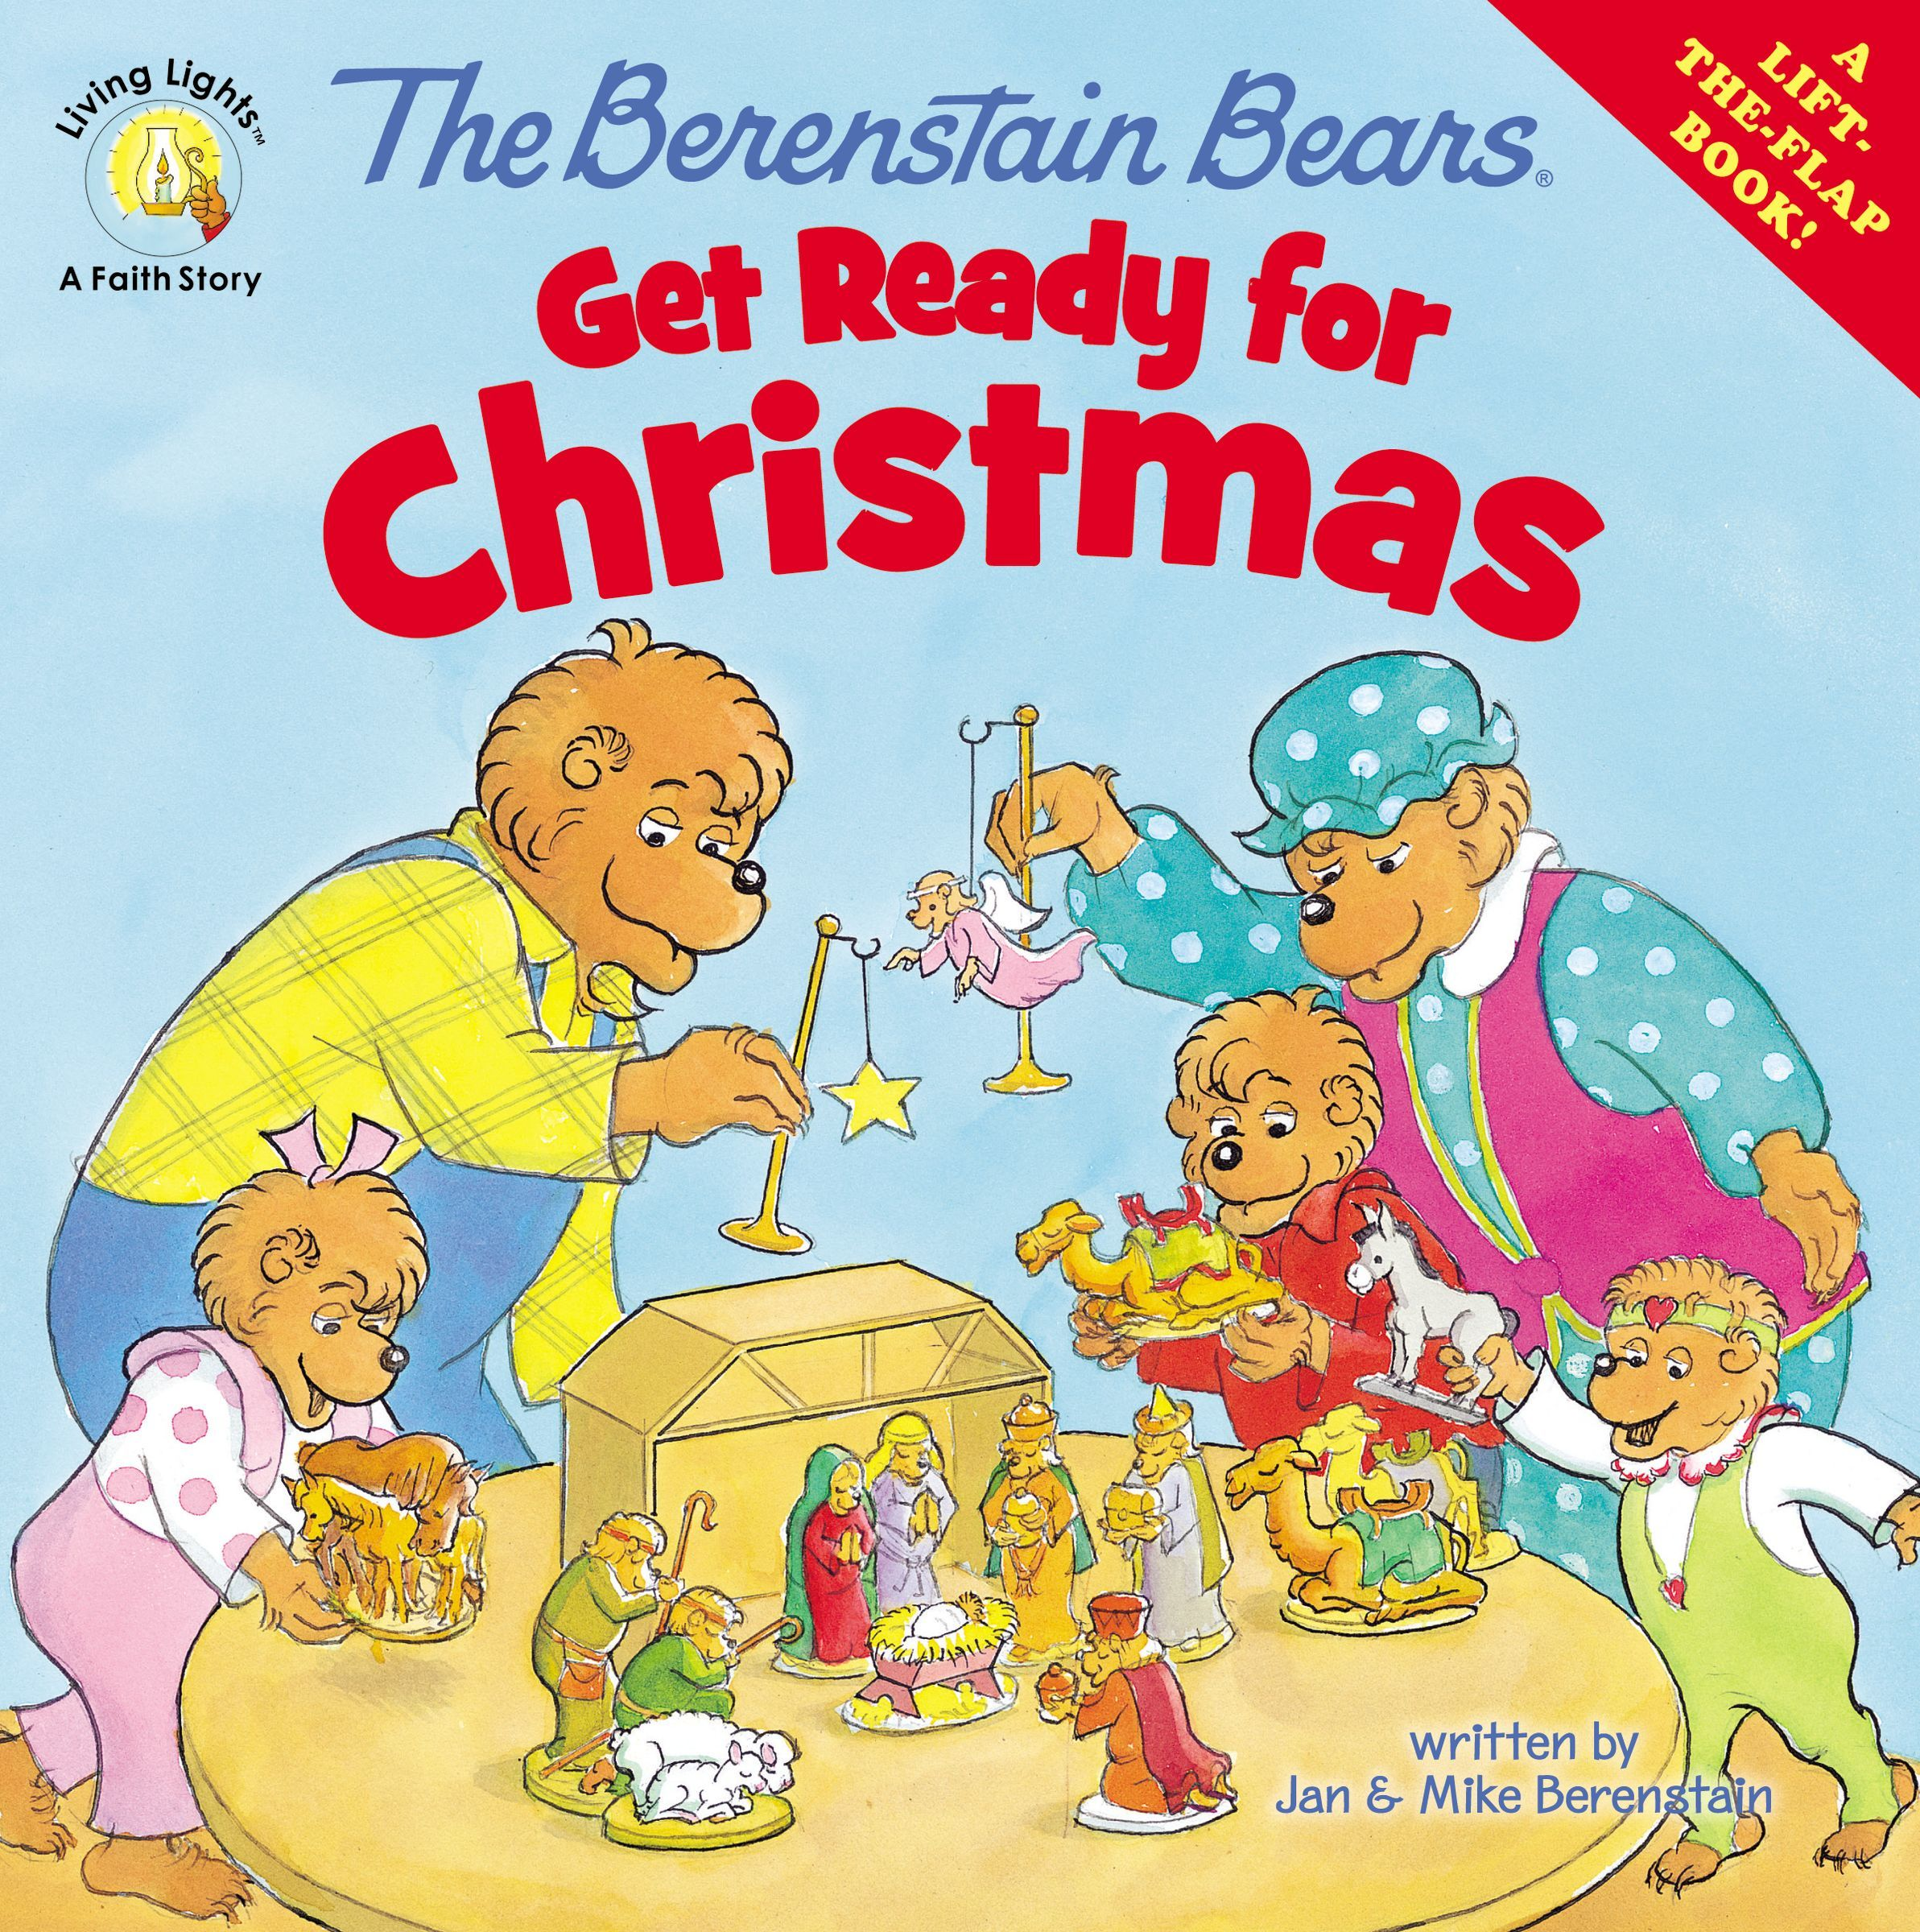 Berenstain Bears Grt Ready for Christmas